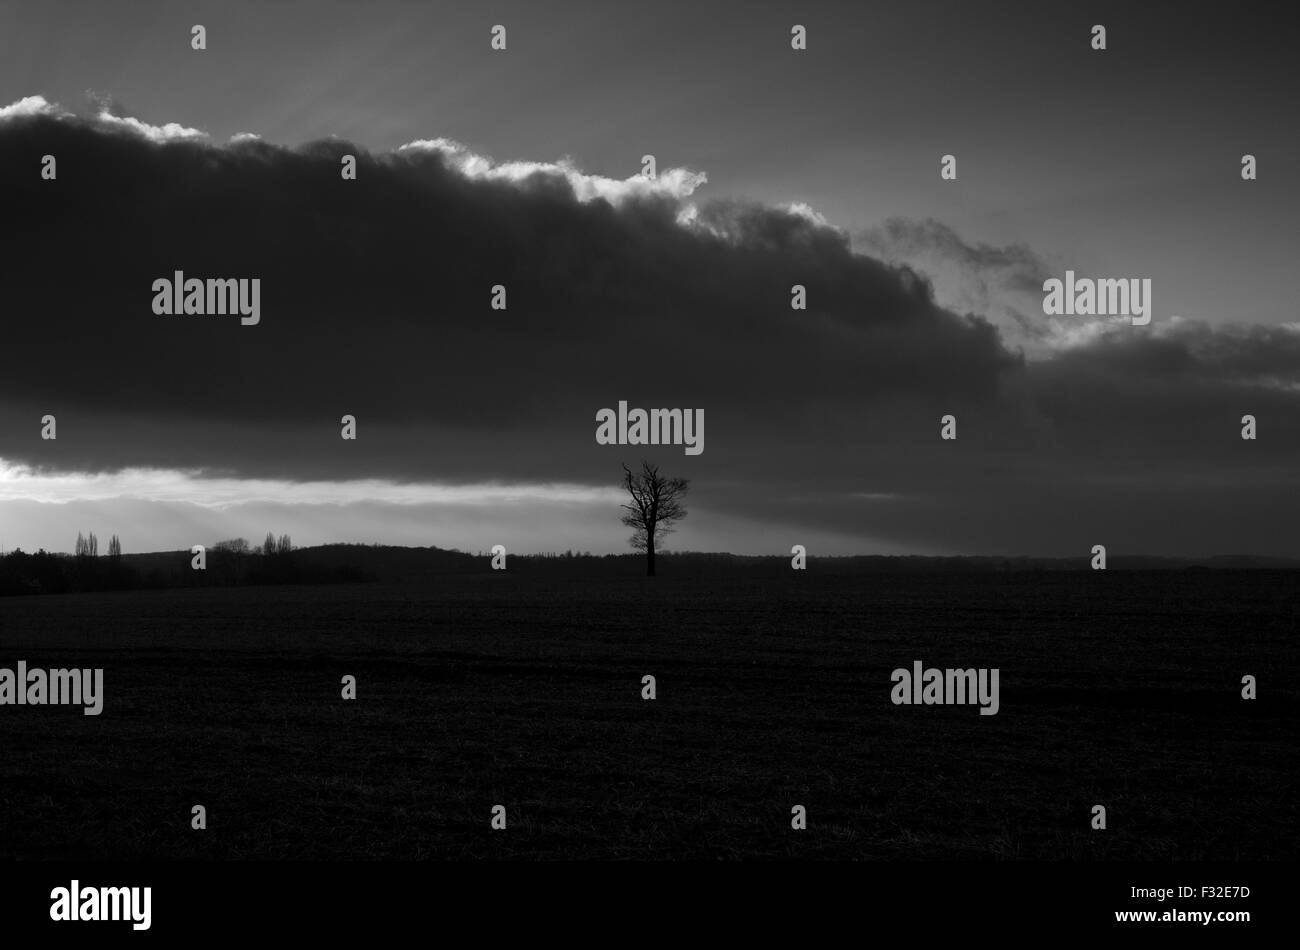 Single Oak tree in a field, black and white - Stock Image